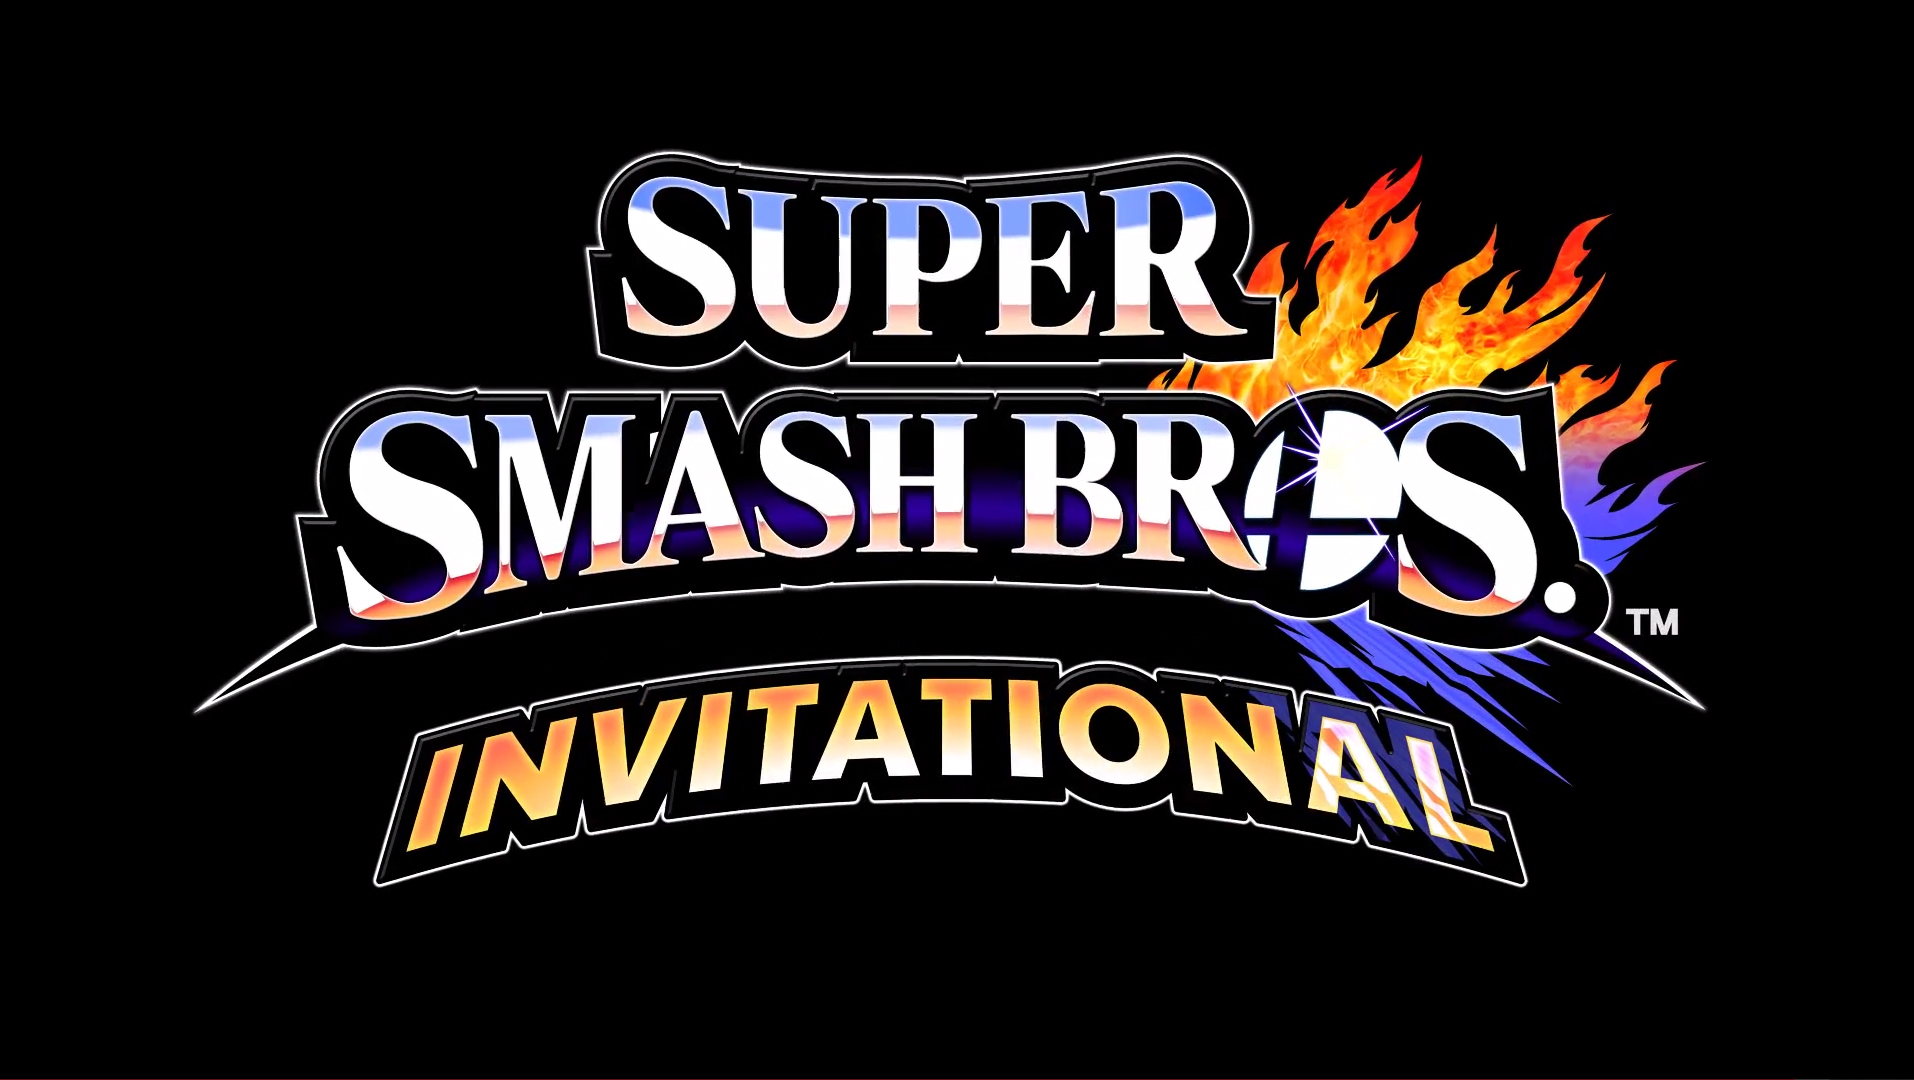 Smashinvitational